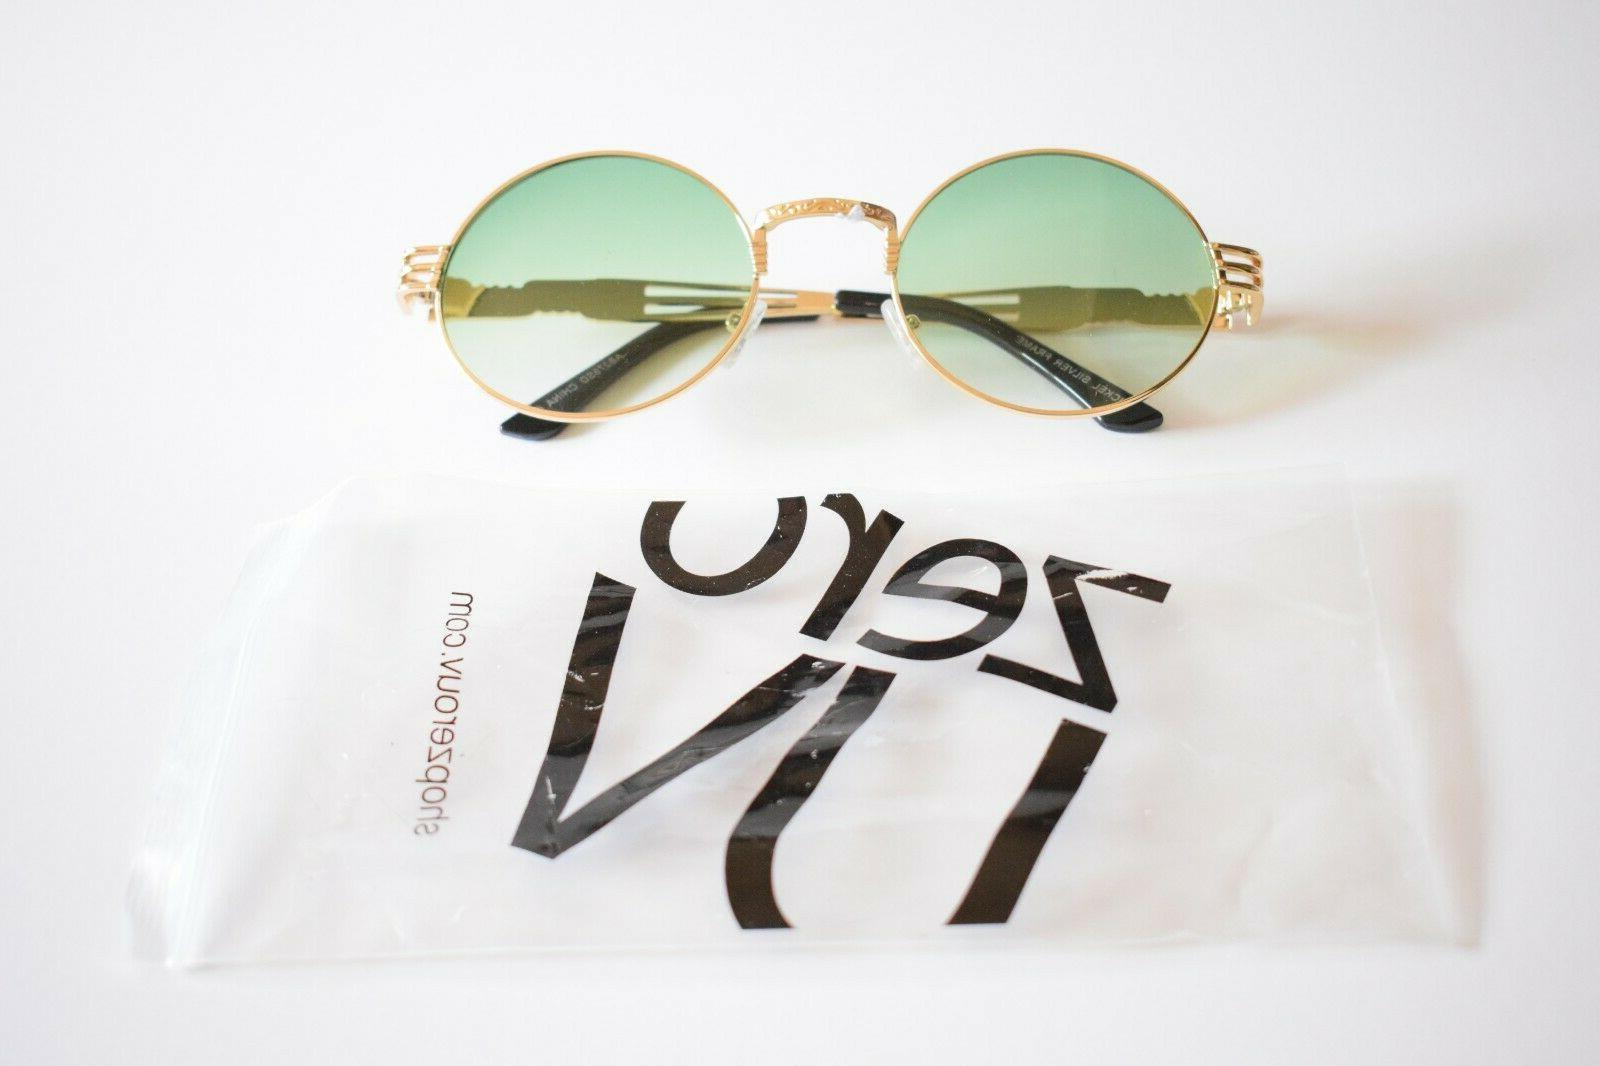 steampunk sunglasses gold metal with green oversize